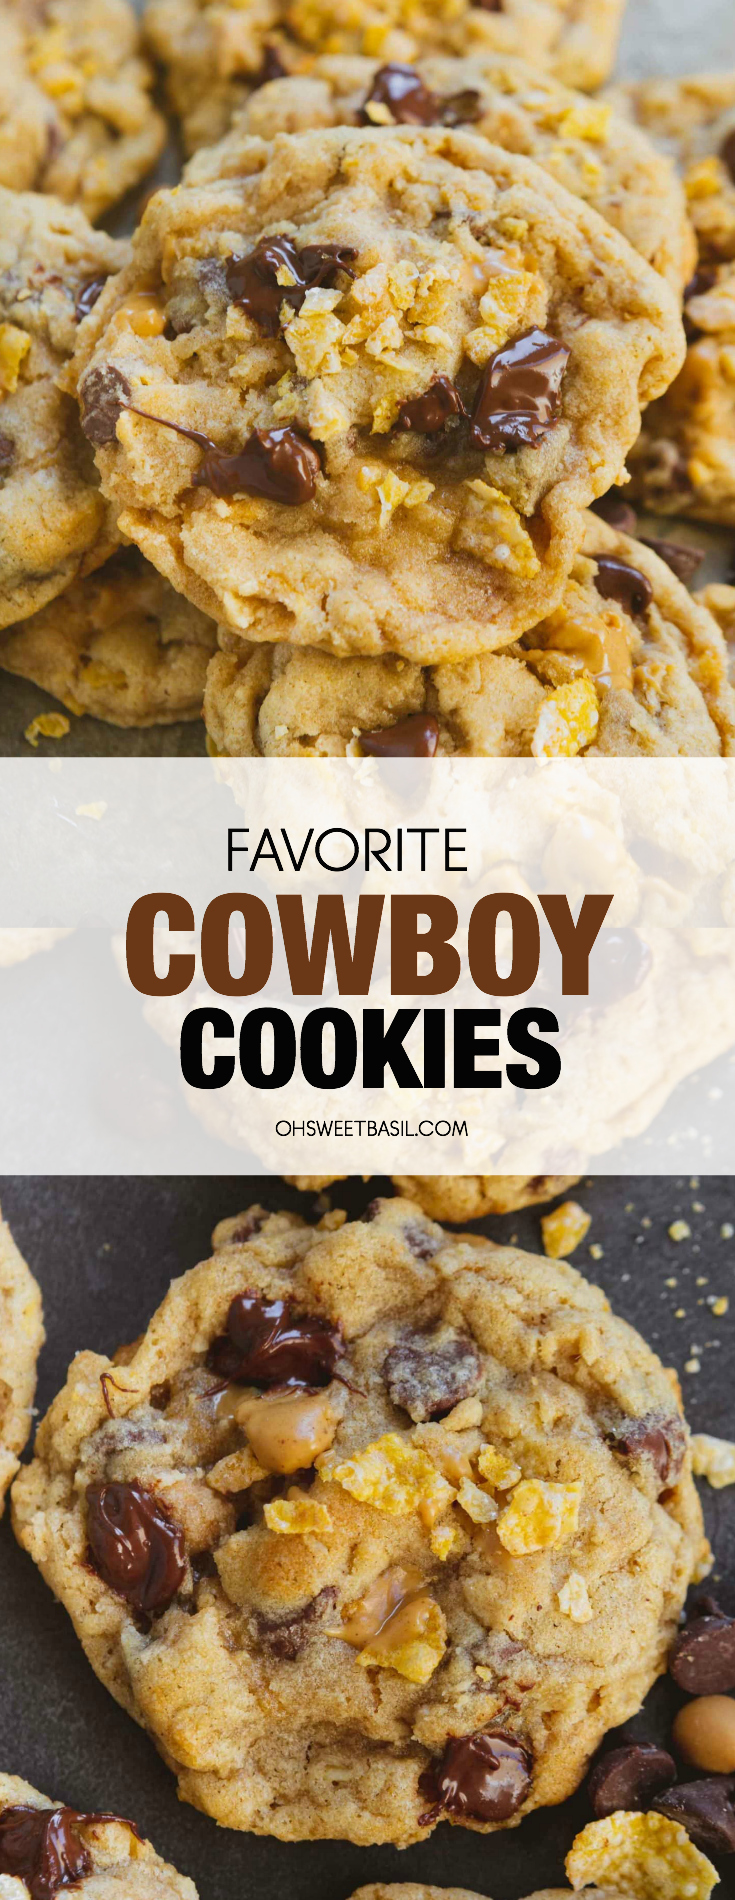 Our Favorite Cowboy Cookies (Loaded Oatmeal Cookie